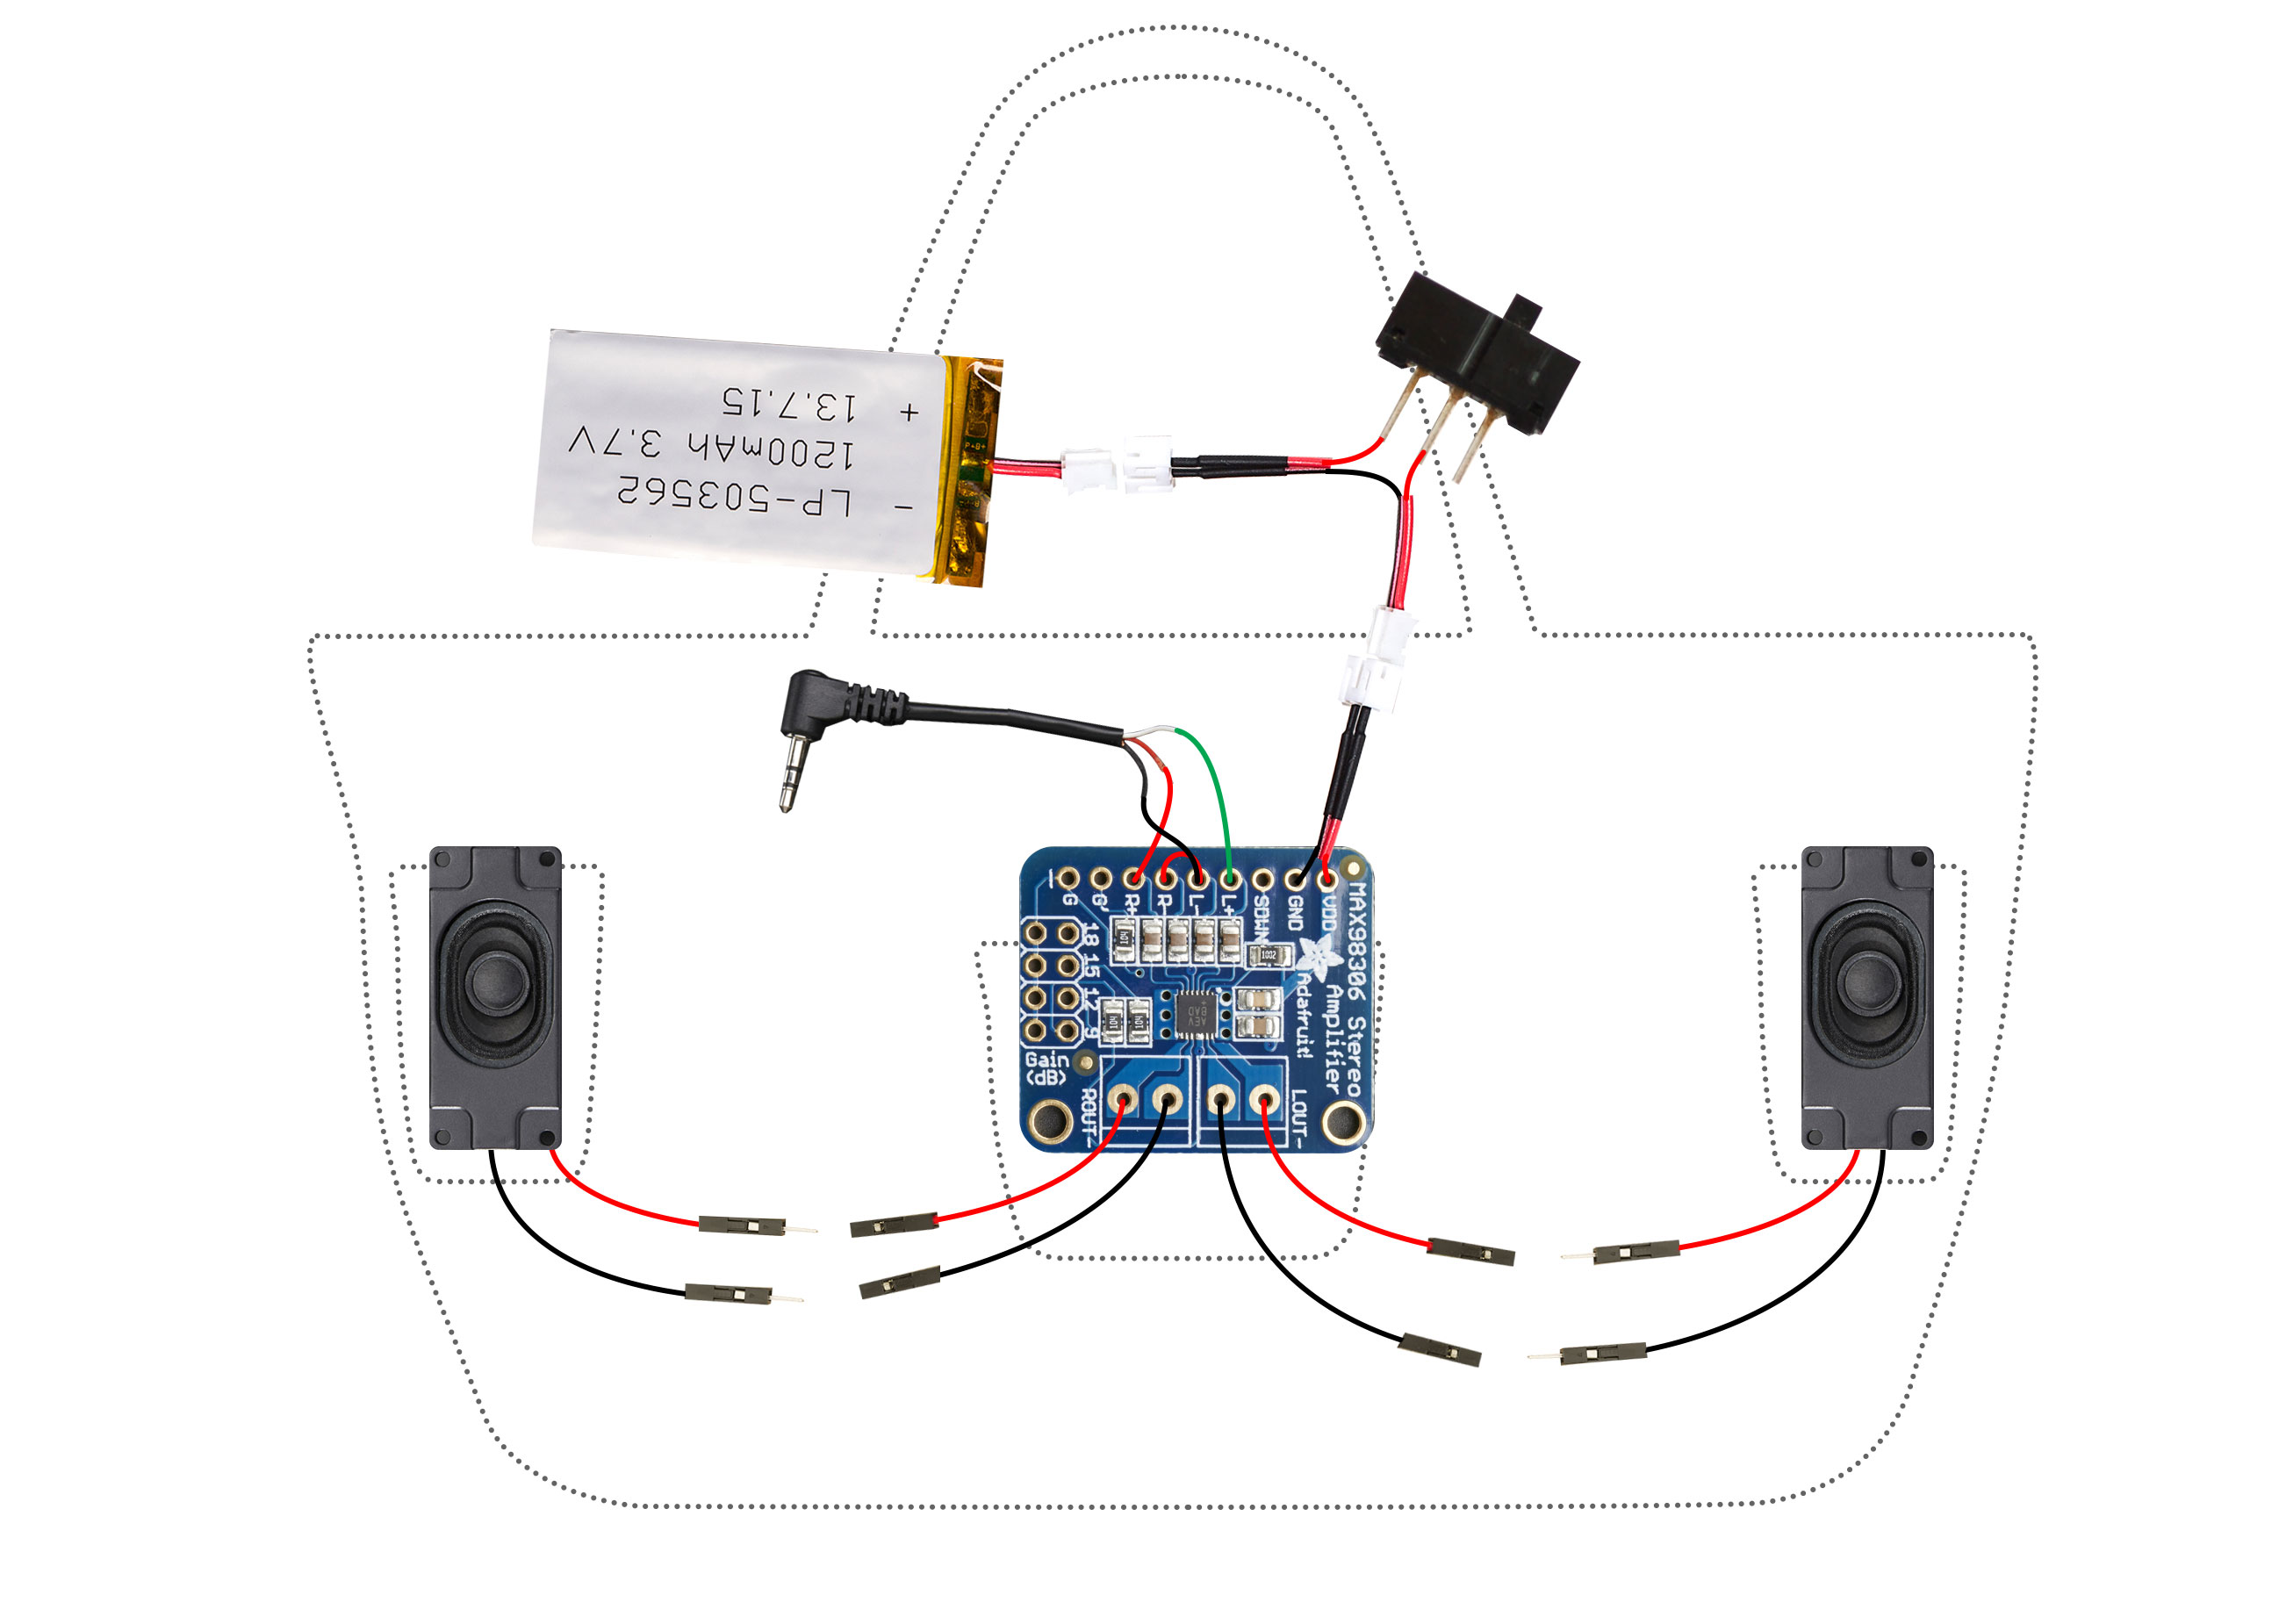 circuit diagram boombox beach bag with audio amp and speakers rh learn adafruit com